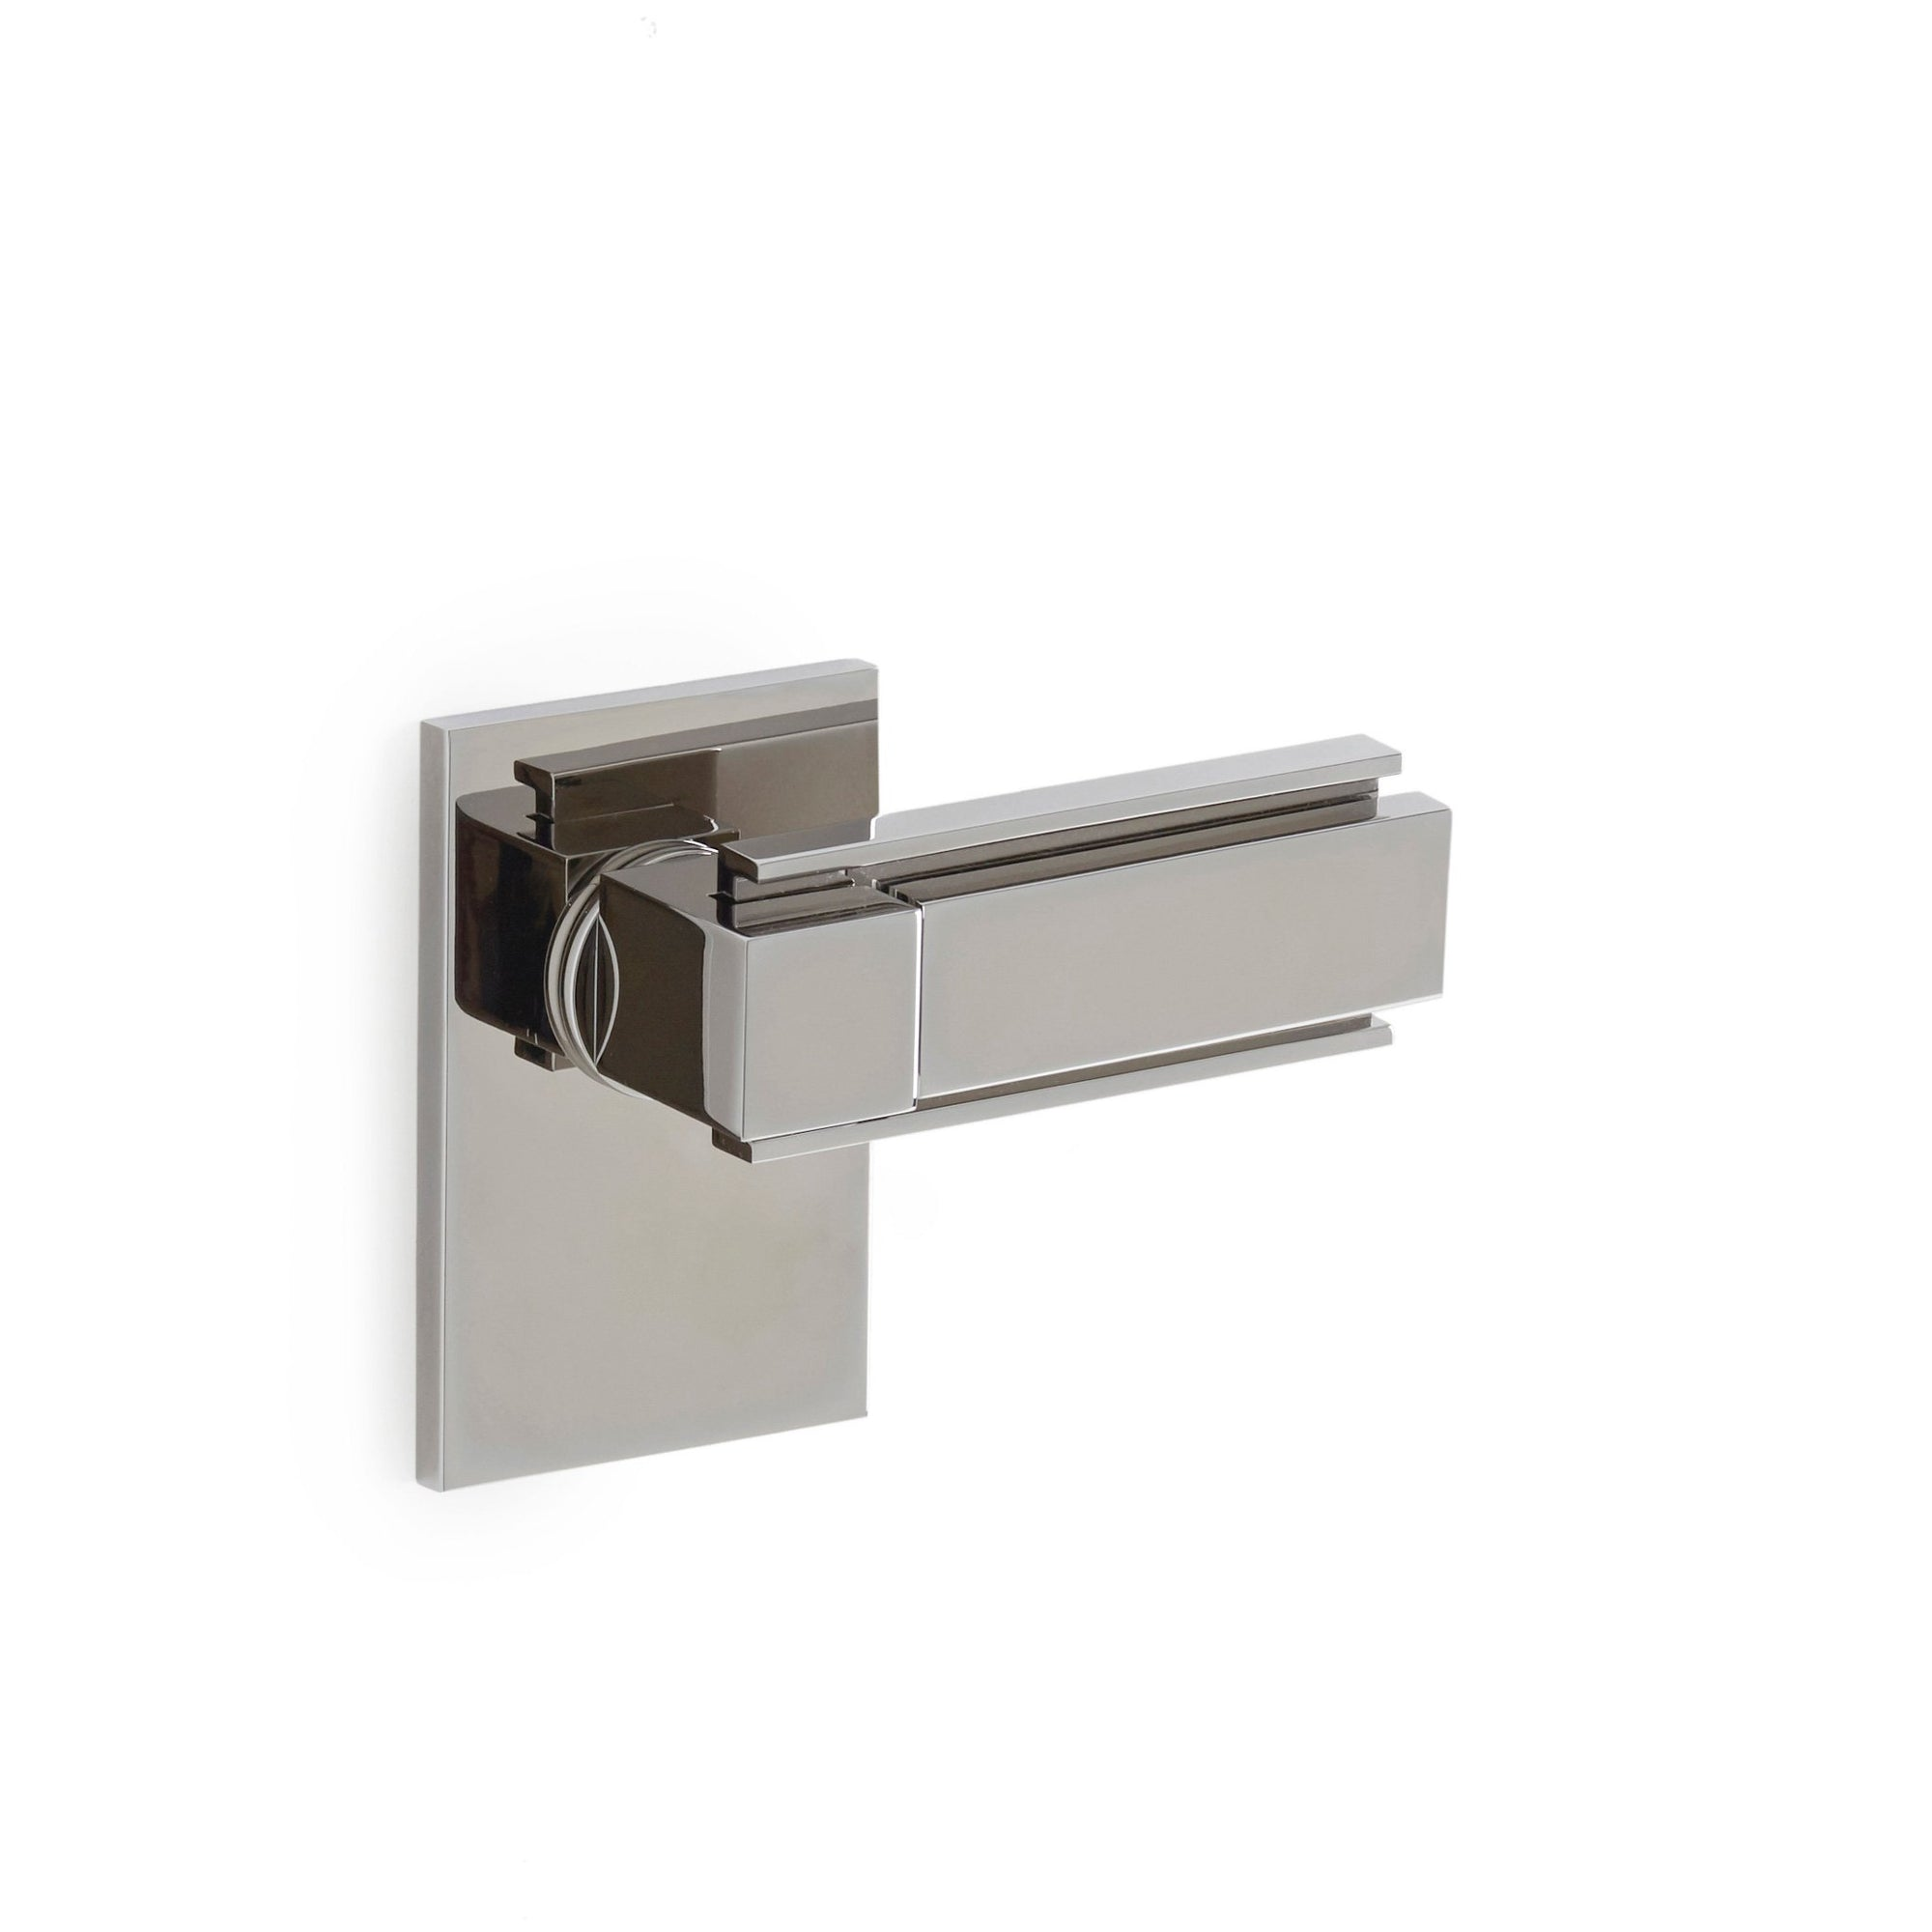 2020DOR-RH-CP Sherle Wagner International Apollo Door Lever in Polished Chrome metal finish